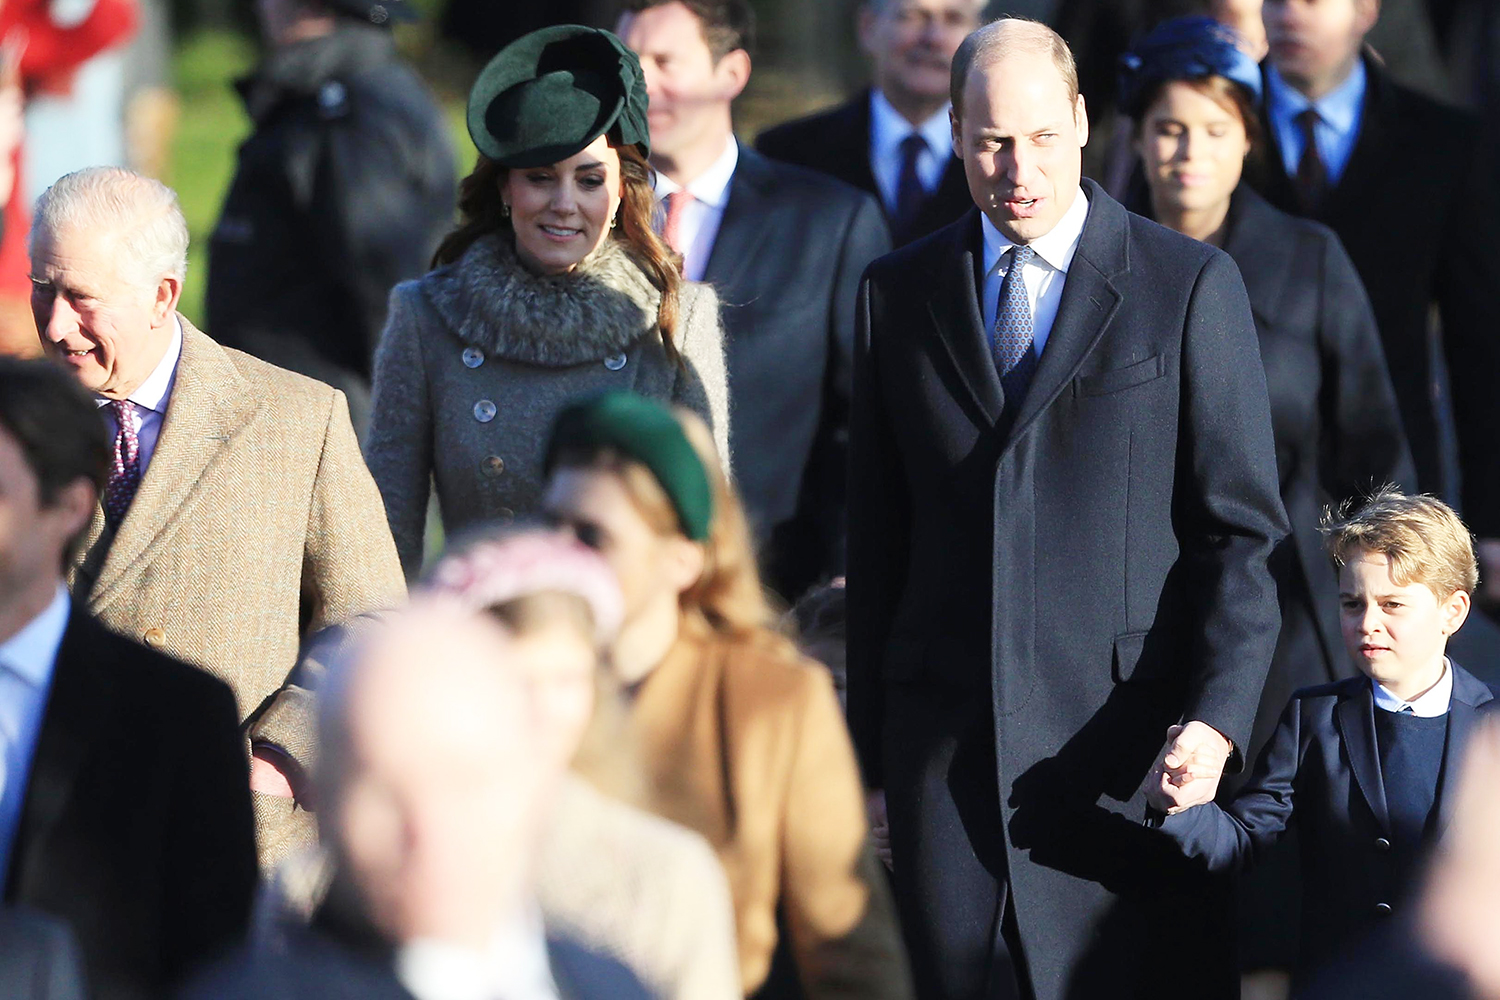 Prince Charles, Prince of Wales ,Prince William, Duke of Cambridge, Catherine, Duchess of Cambridge and Prince George attend the Christmas Day Church service